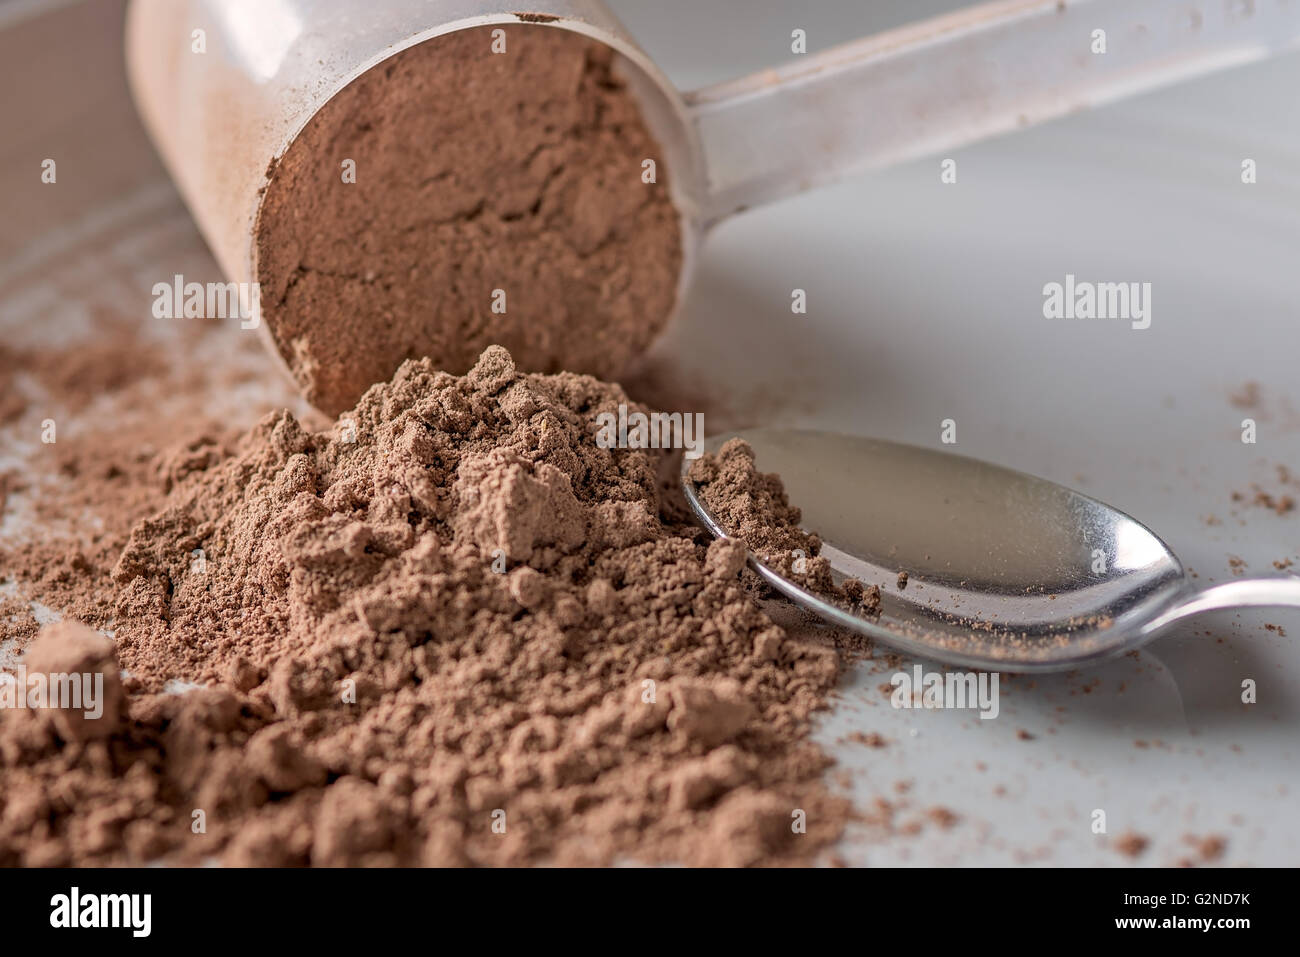 Chocolate meal protein powder spilling from a scoop next to a spoon - Stock Image